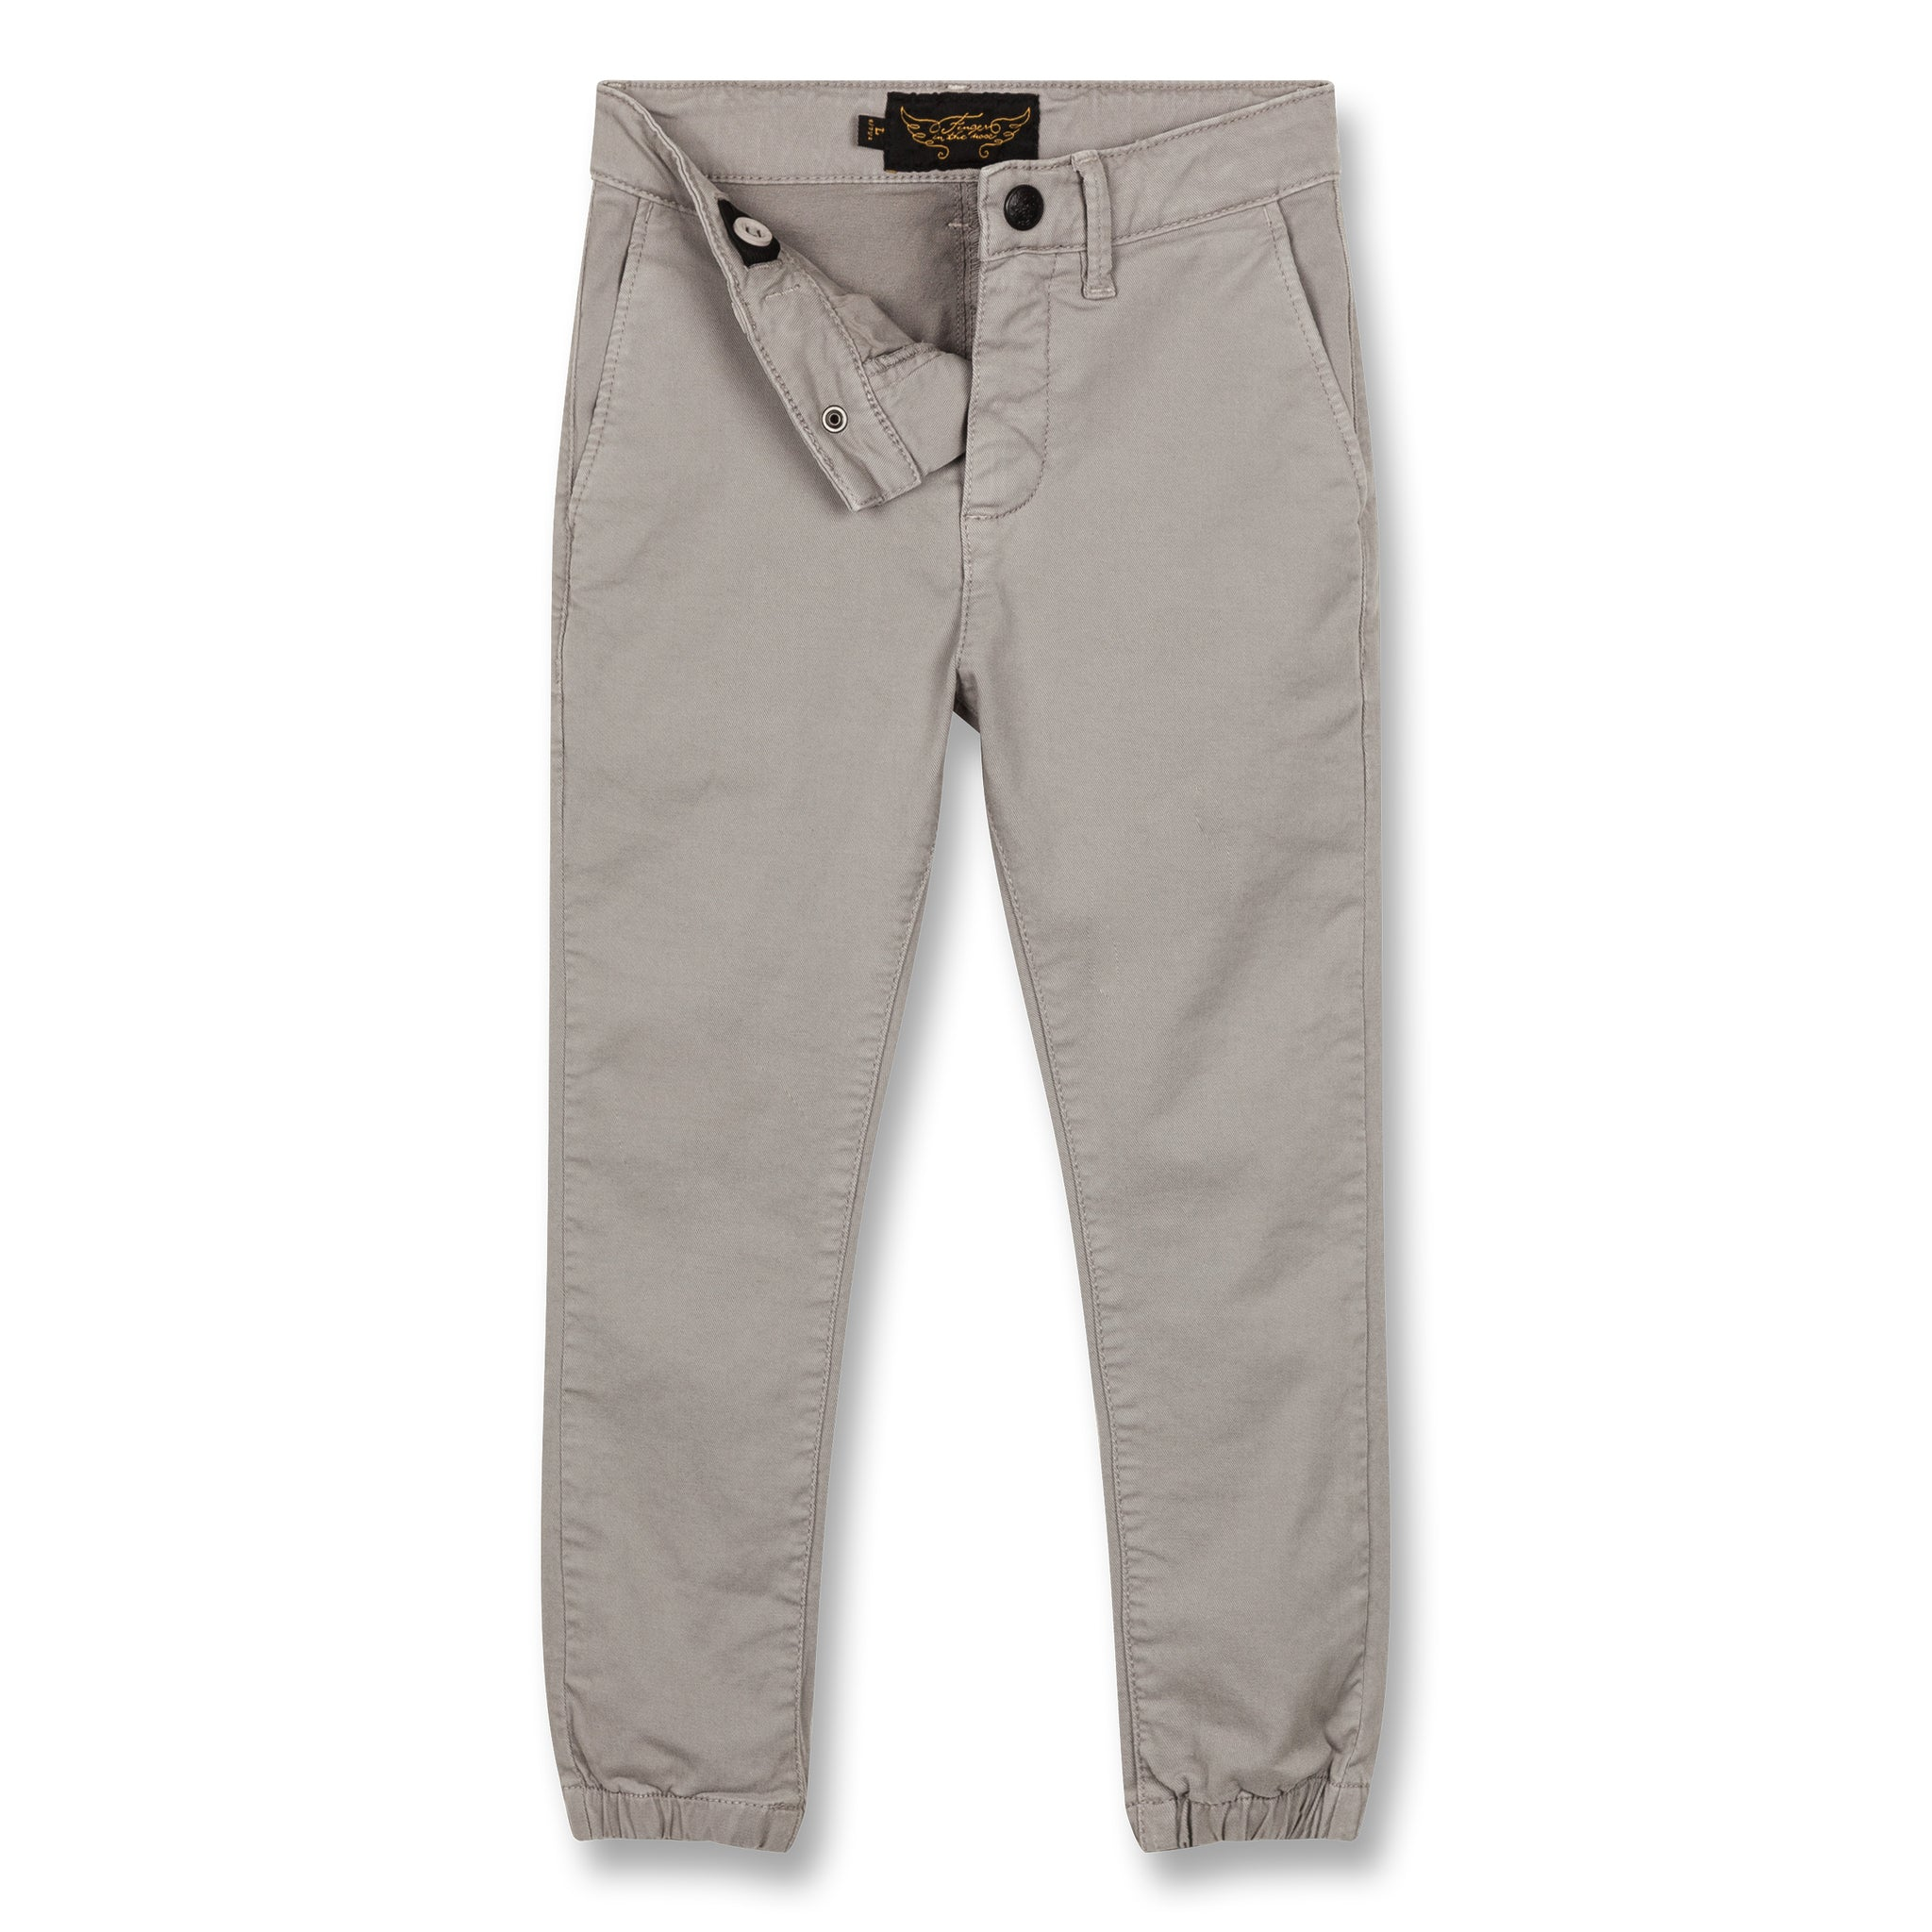 SKATER Warm Grey - Elasticed Bottom Chino Fit Pants 2